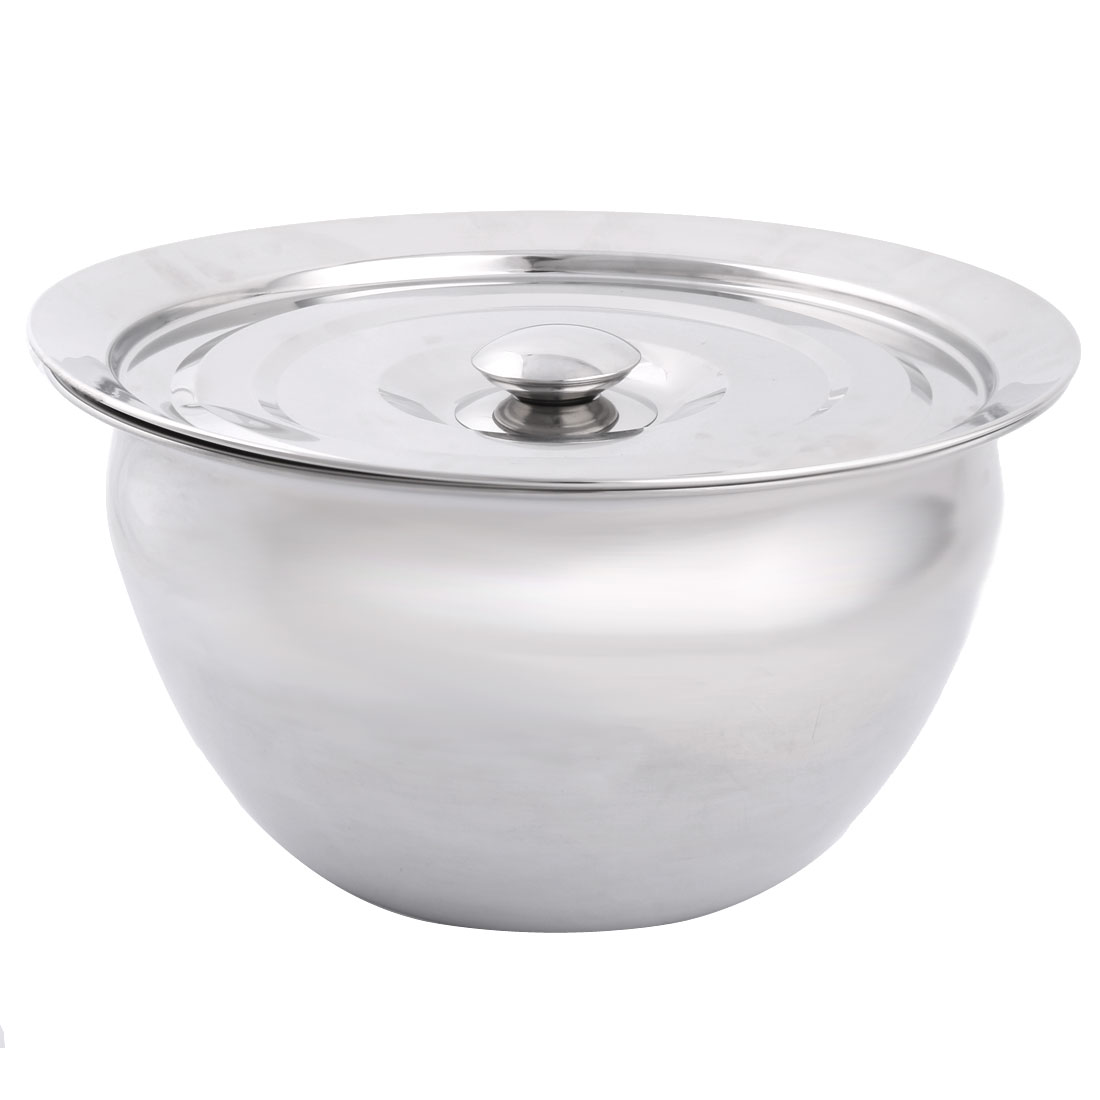 Stainless Steel Salt Sugar Serving Bowl Seasoning Container Condiment Jar 29.5cm Dia